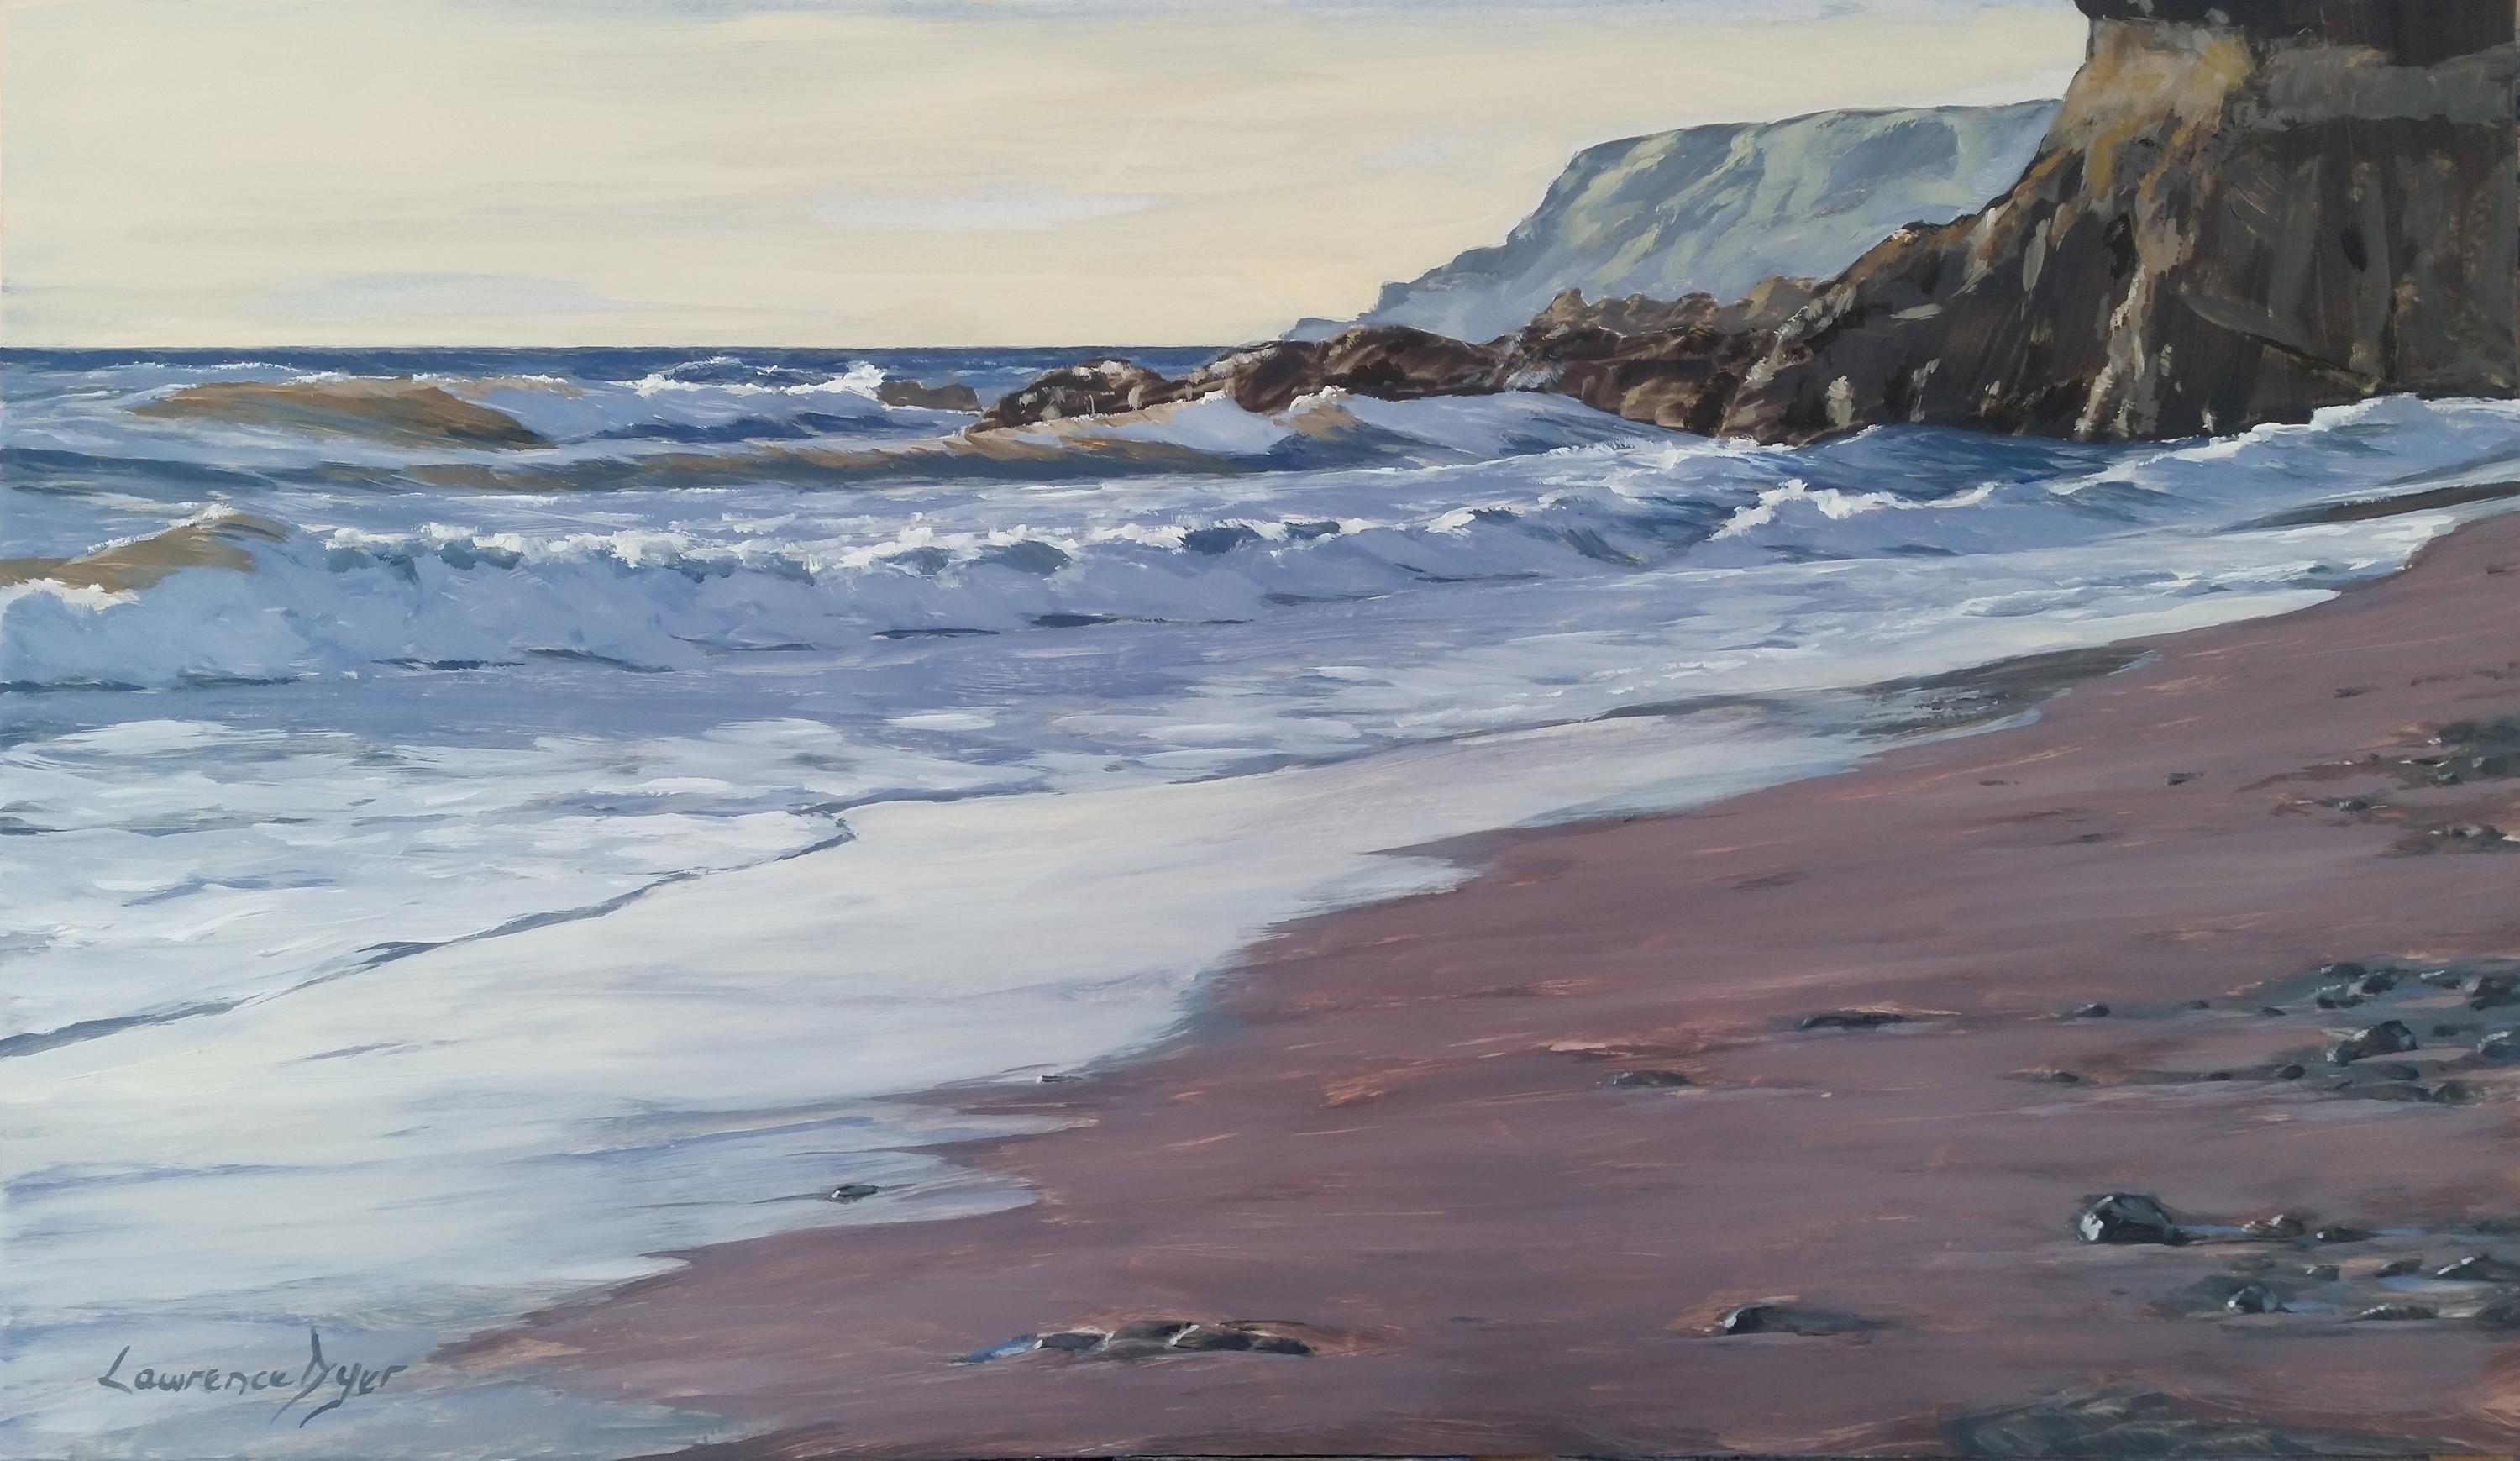 Widemouth Bay Breakers by Lawrence Dyer